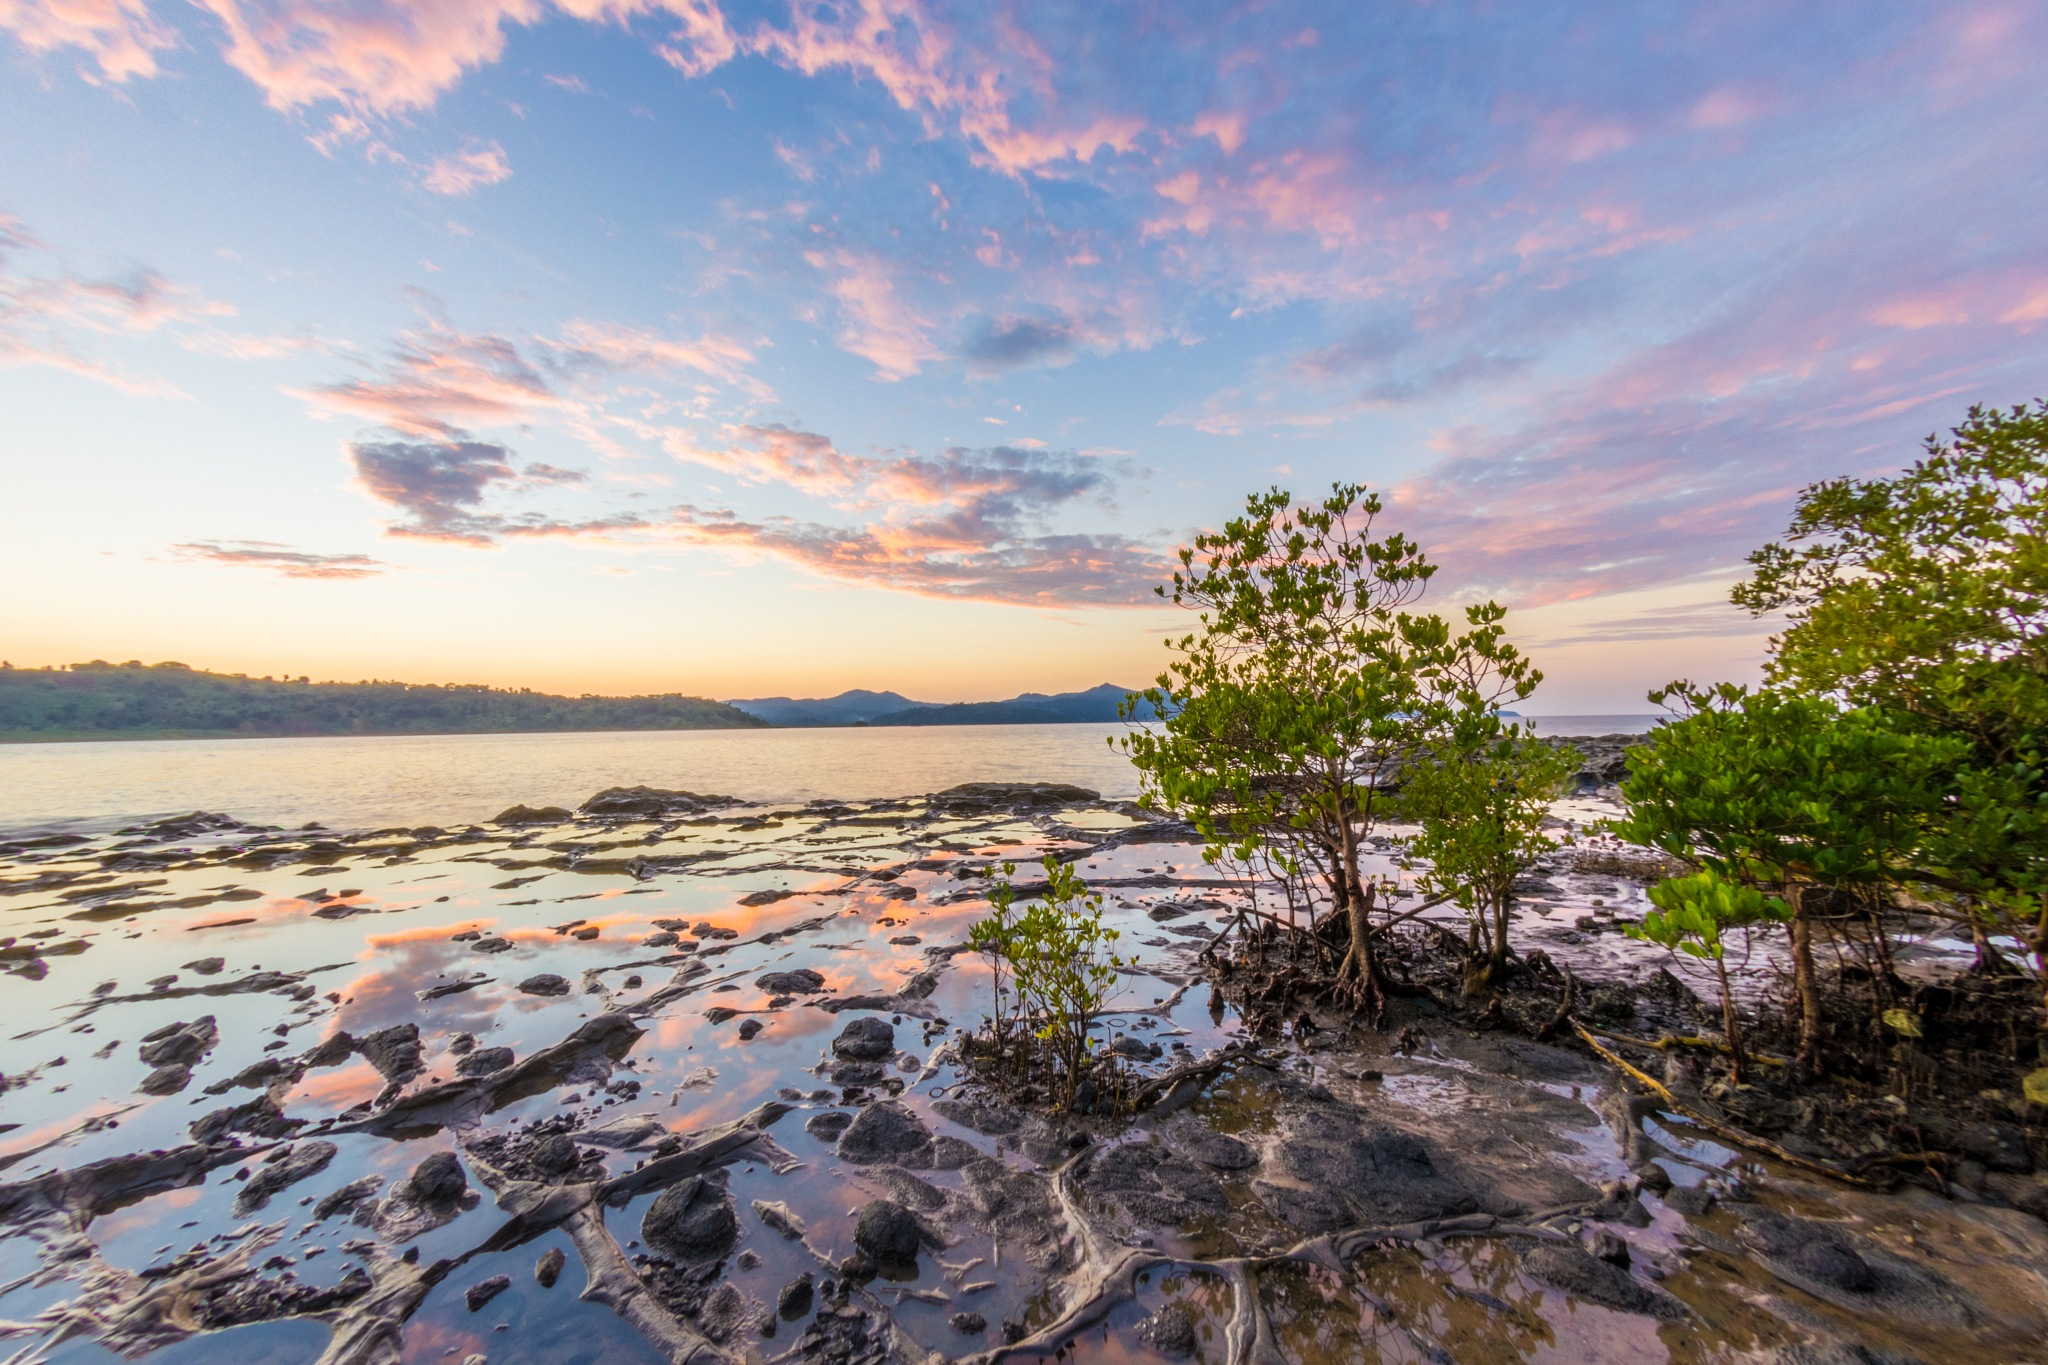 Sunset in Longoni's mangrove by Nicolas F.